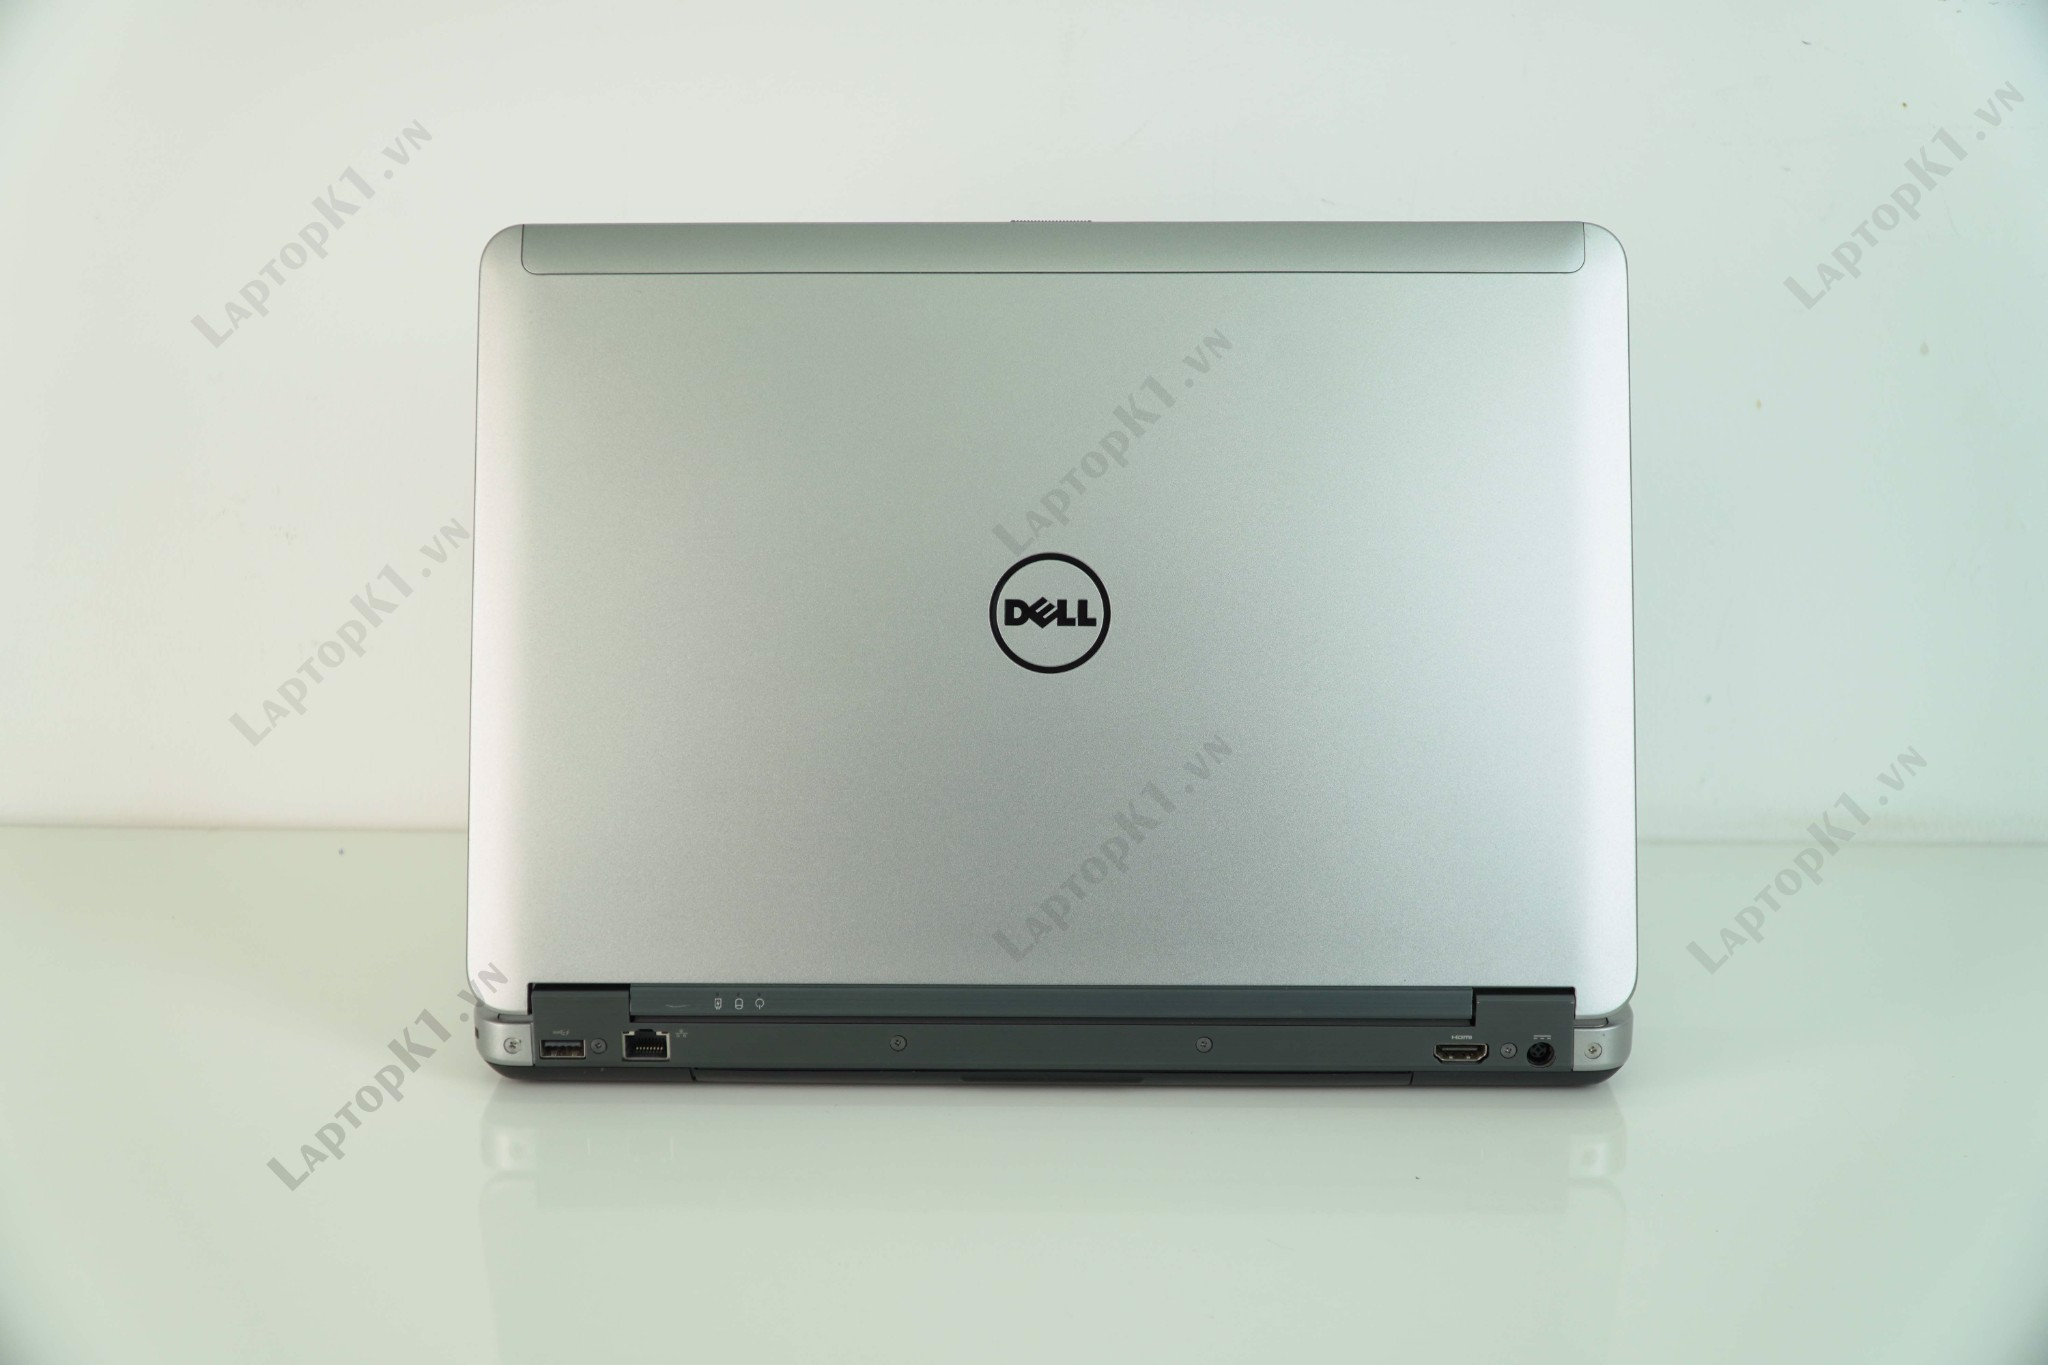 Laptop Dell Latitude E6440 (Core i5 4200M, RAM 4GB, SSD 120GB, Intel HD Graphics 4600, 14 inch)